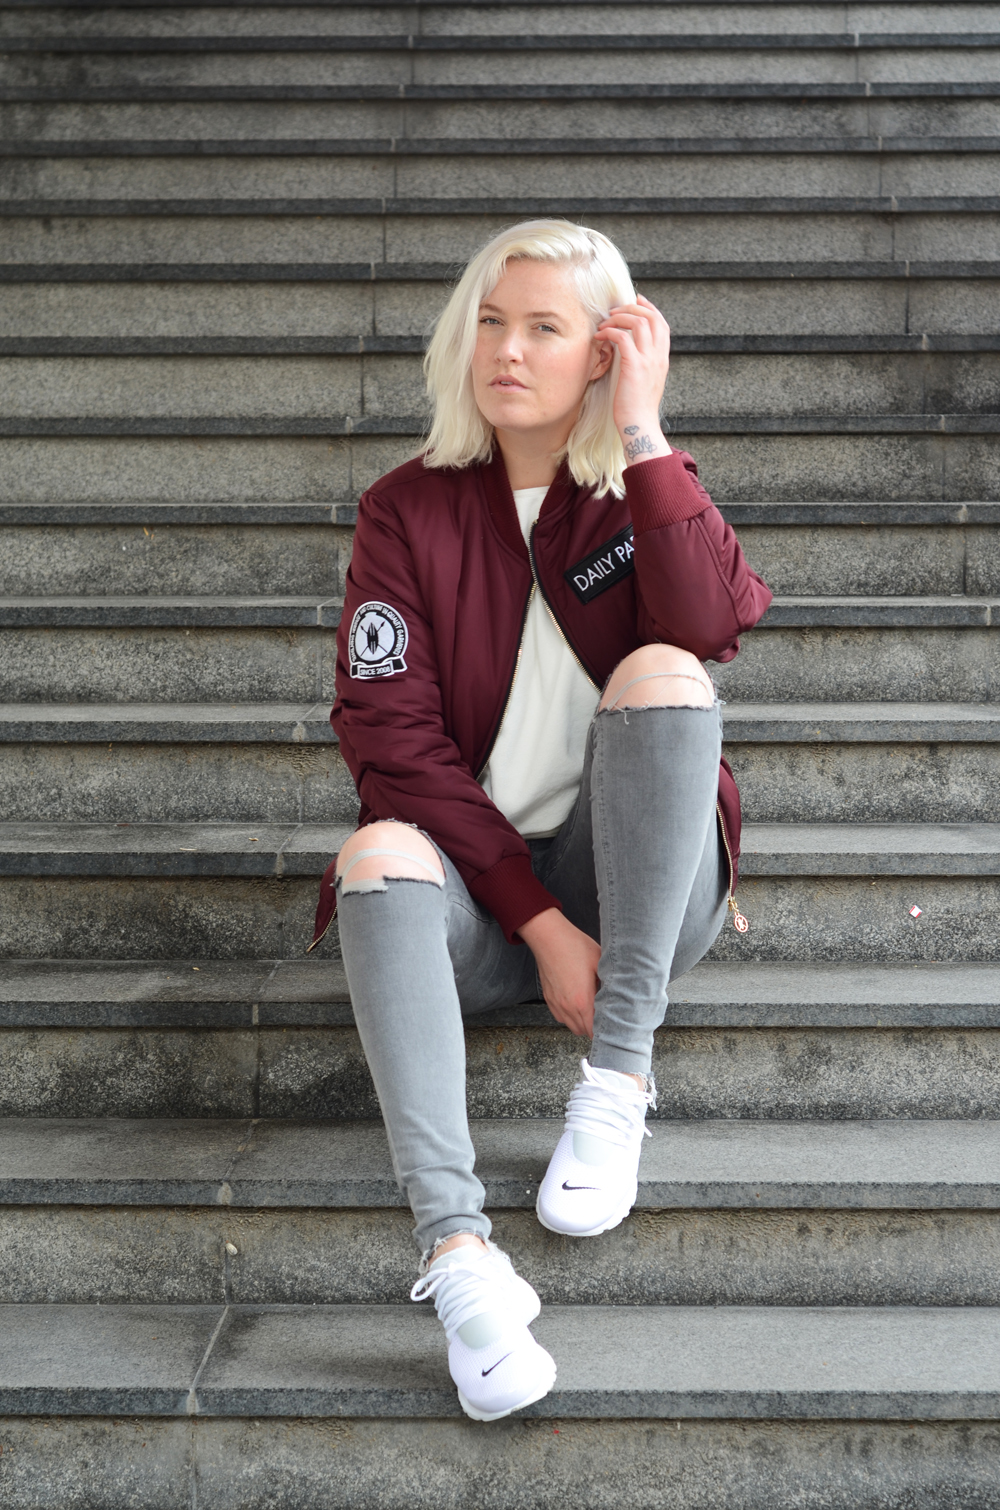 2015 roundup | Outfits - Girl on kicks